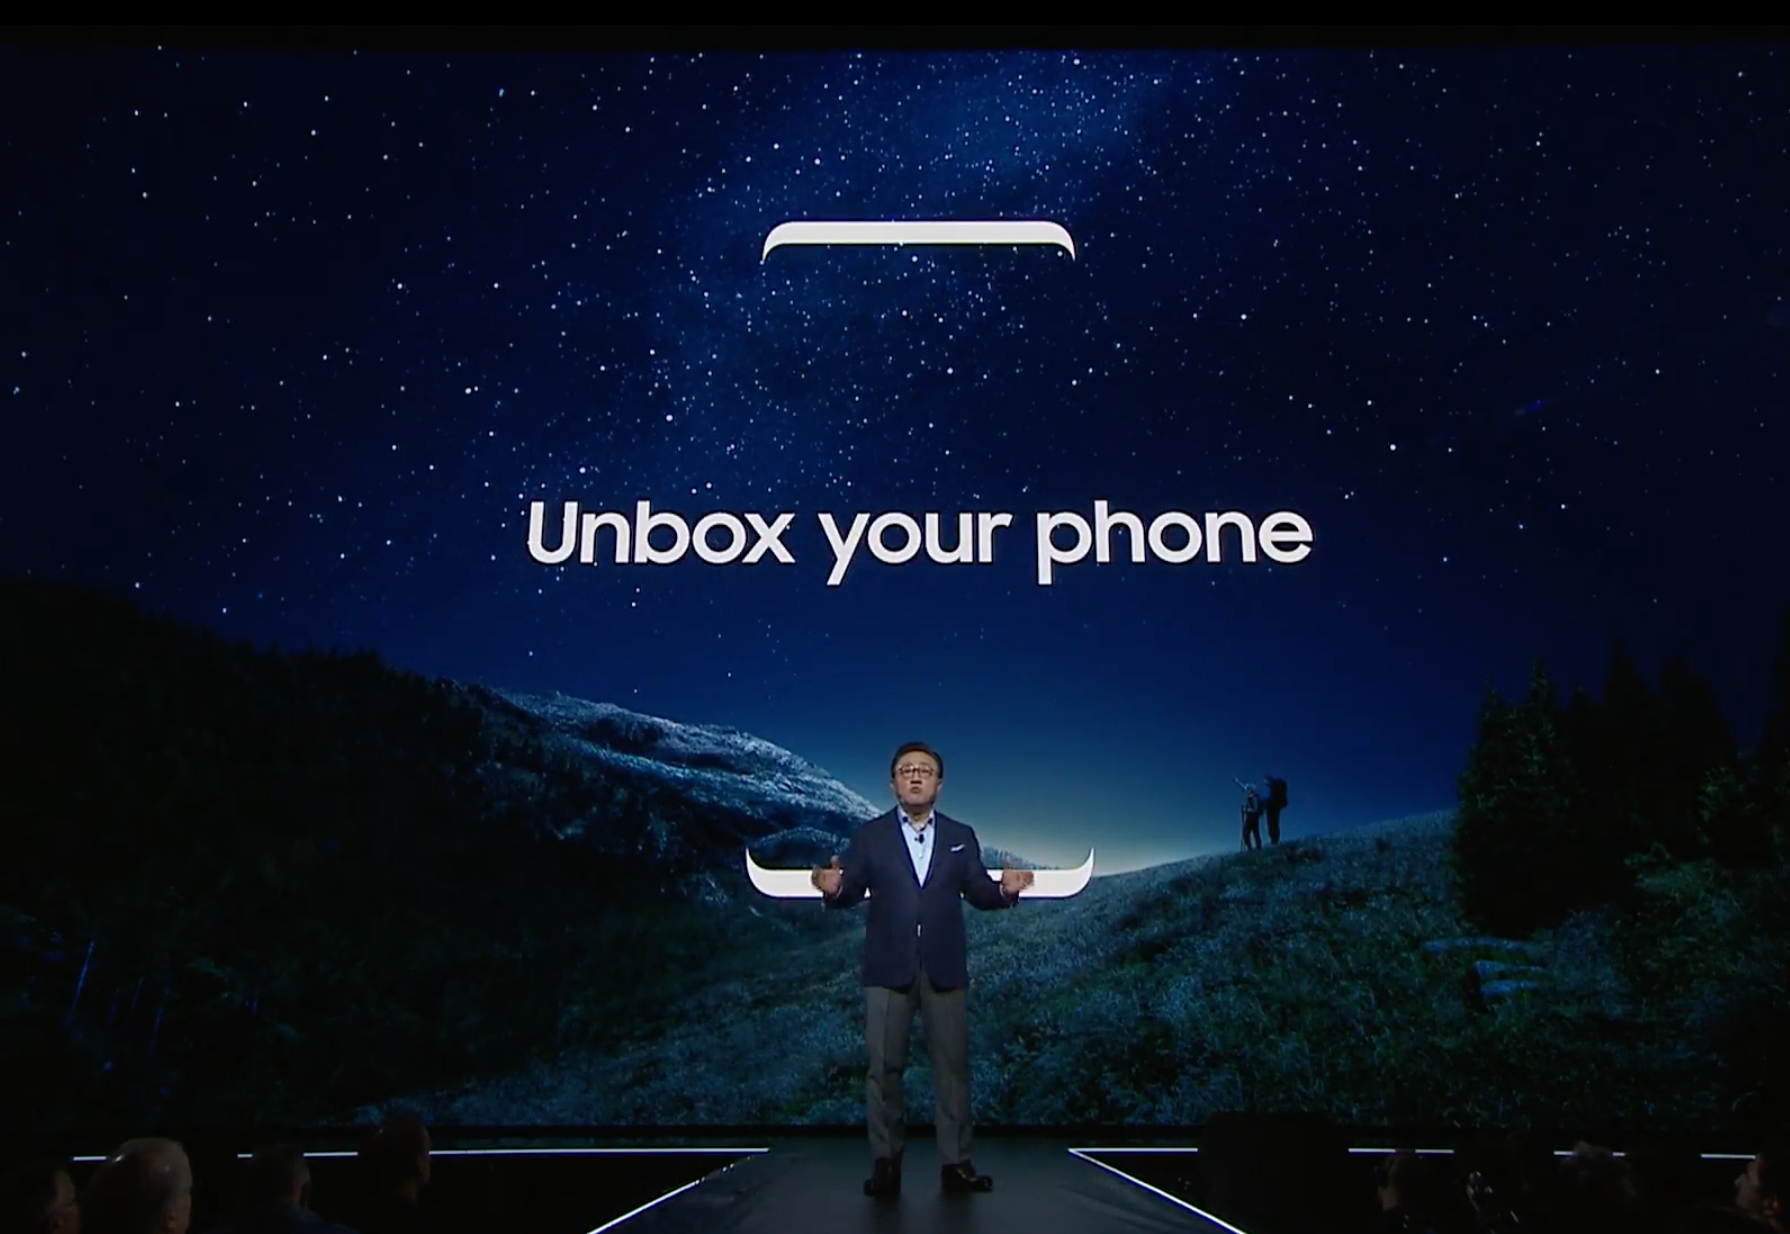 The Samsung Galaxy S8 will be available April 21st, starting from £679